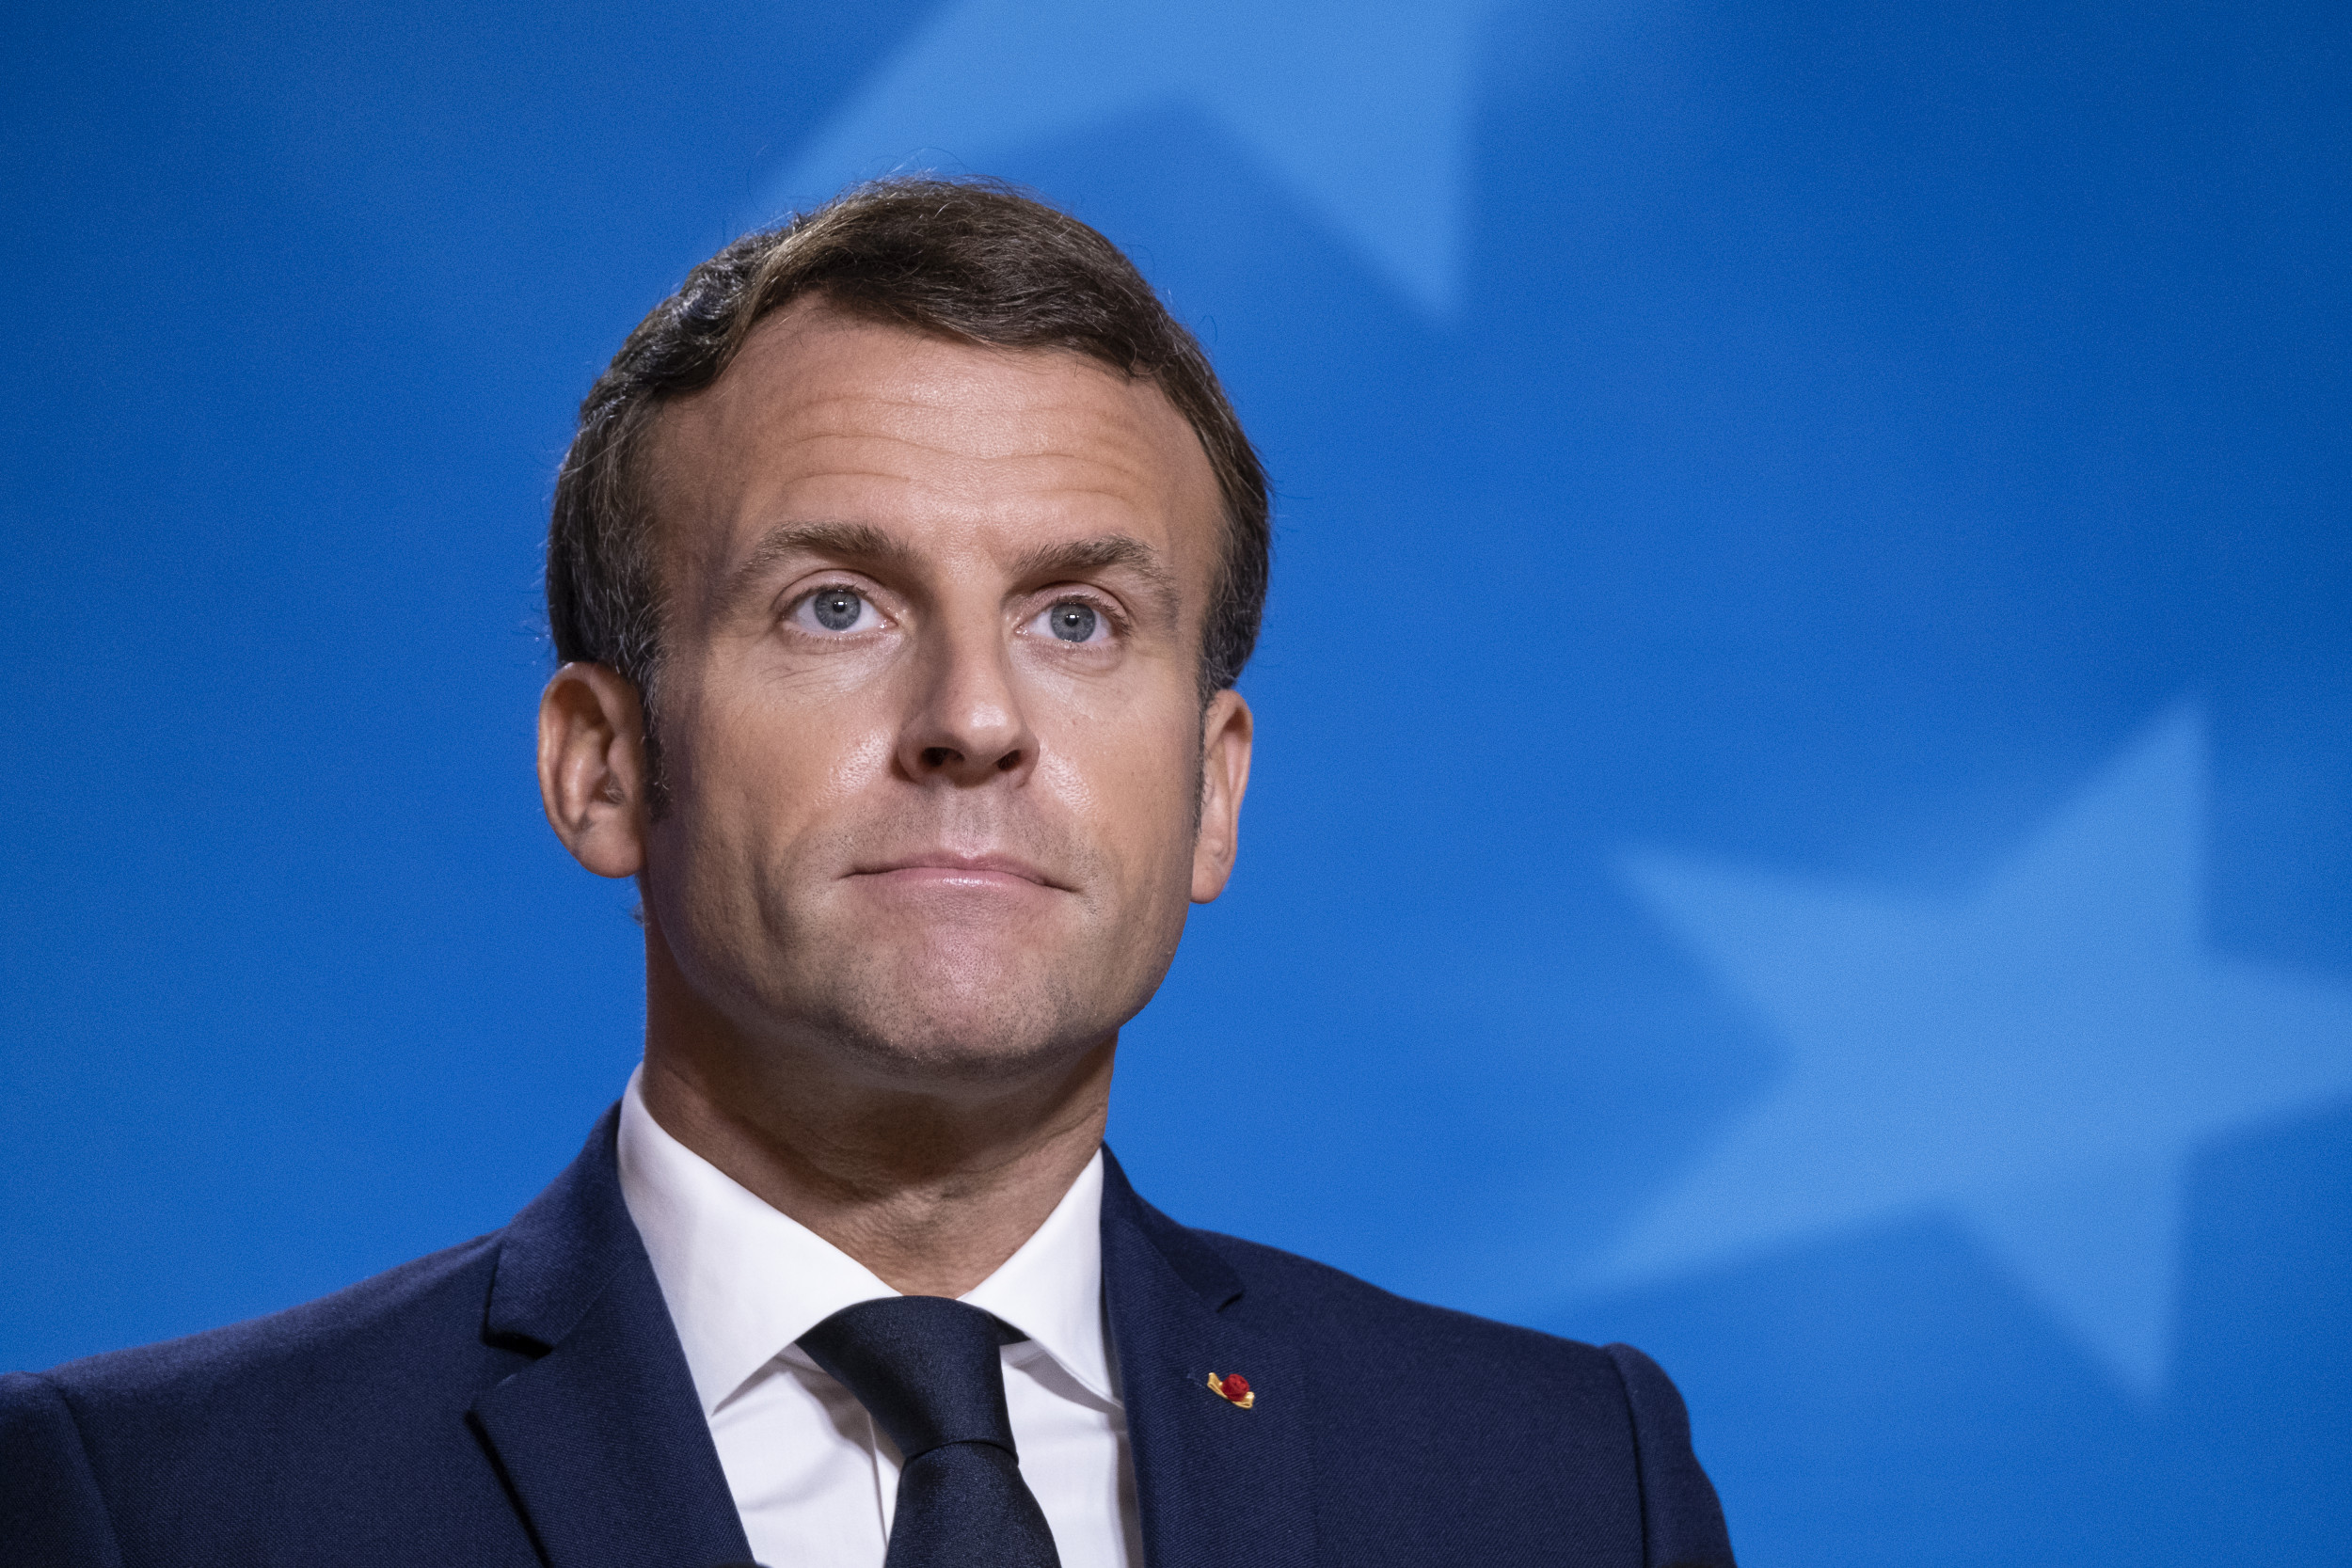 Macron Heralds Opportunity To Make Our Planet Great Again After Biden Win